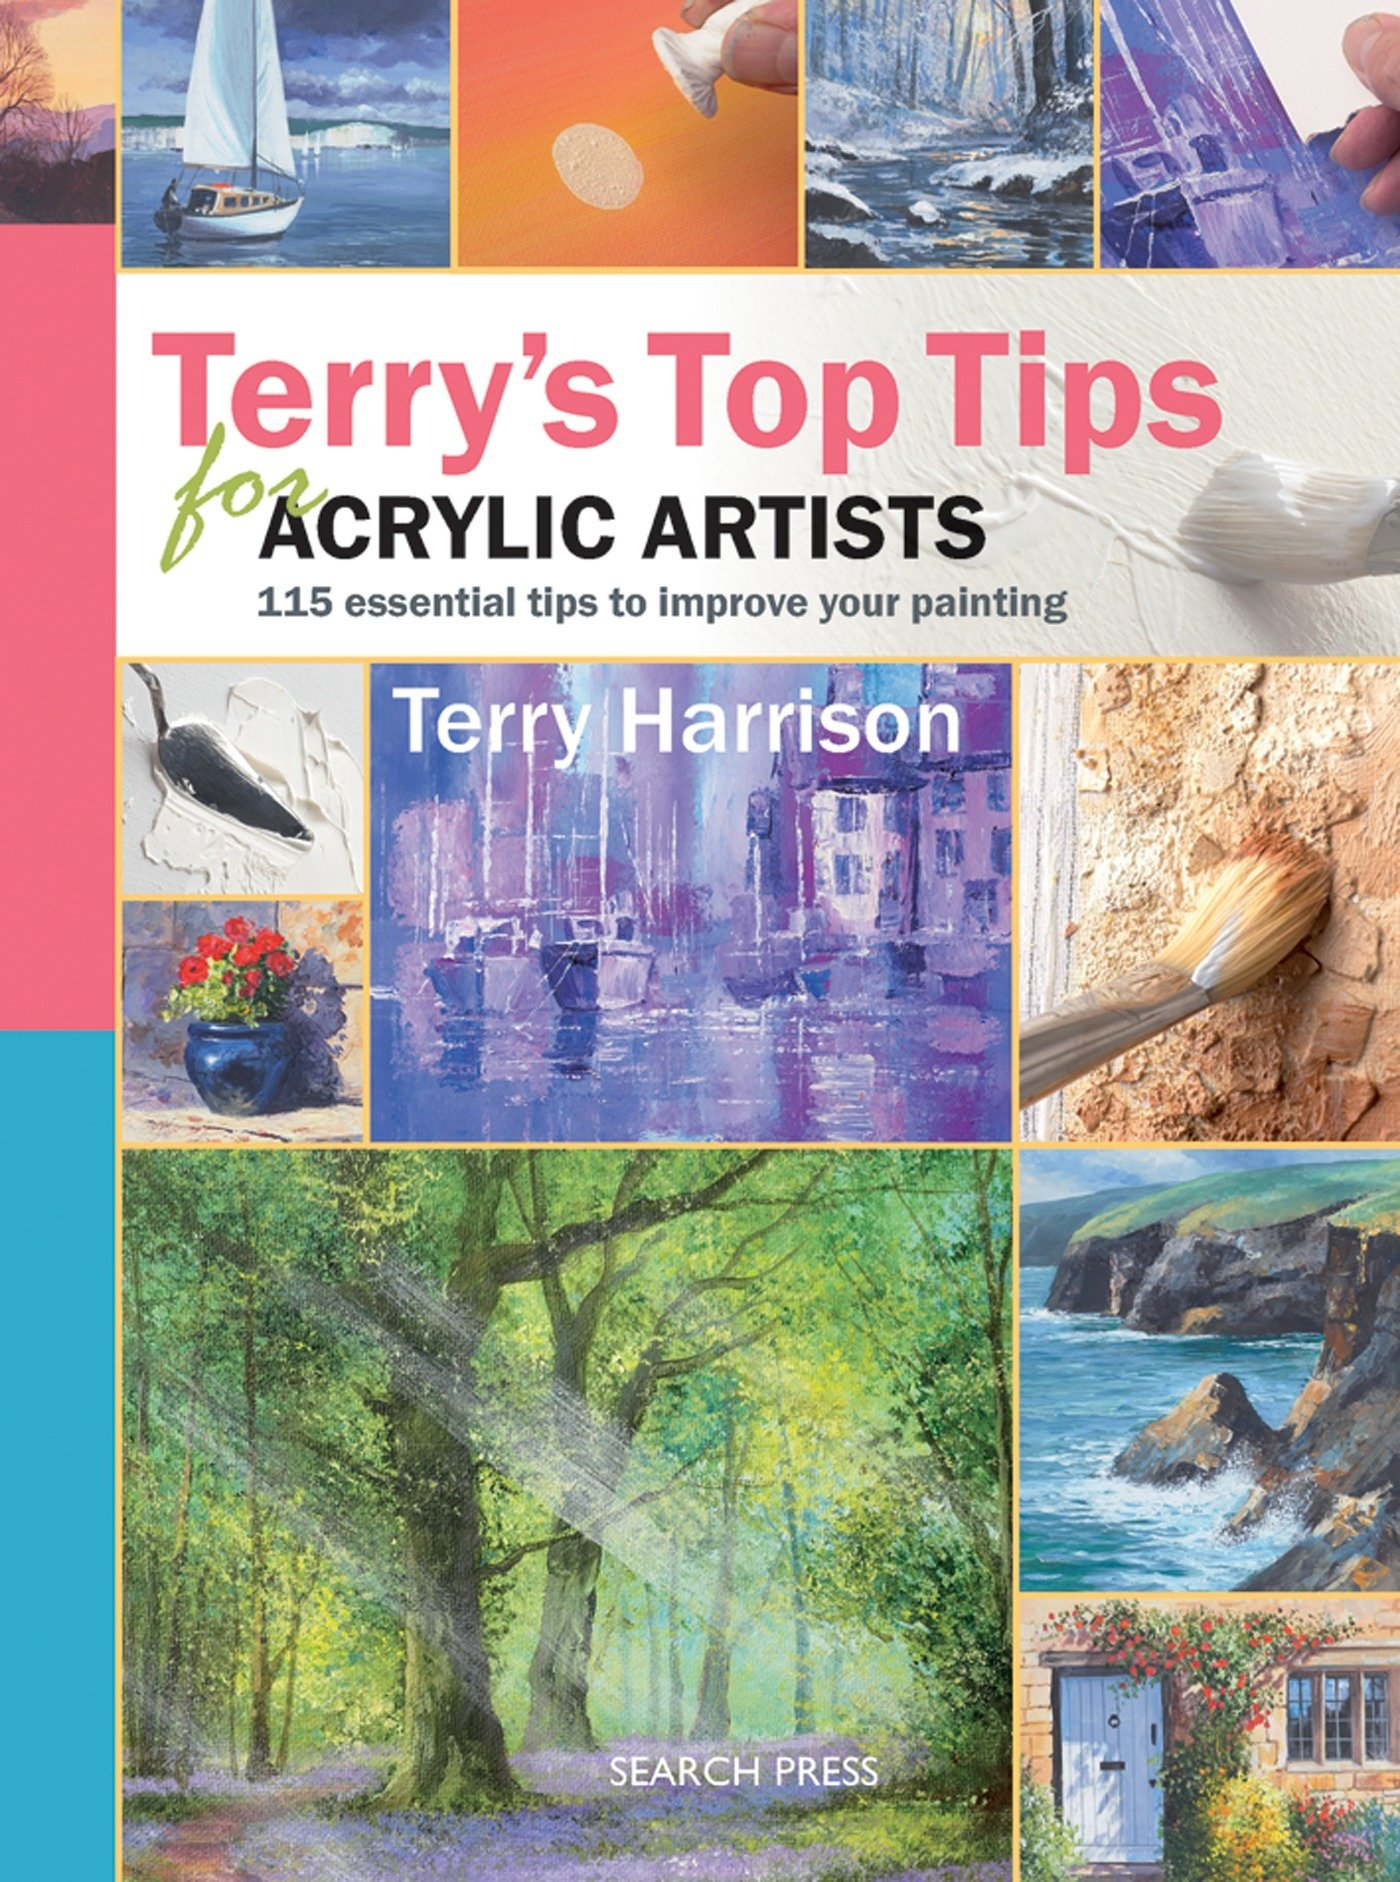 Terry's Top Tips for Acrylic Artists